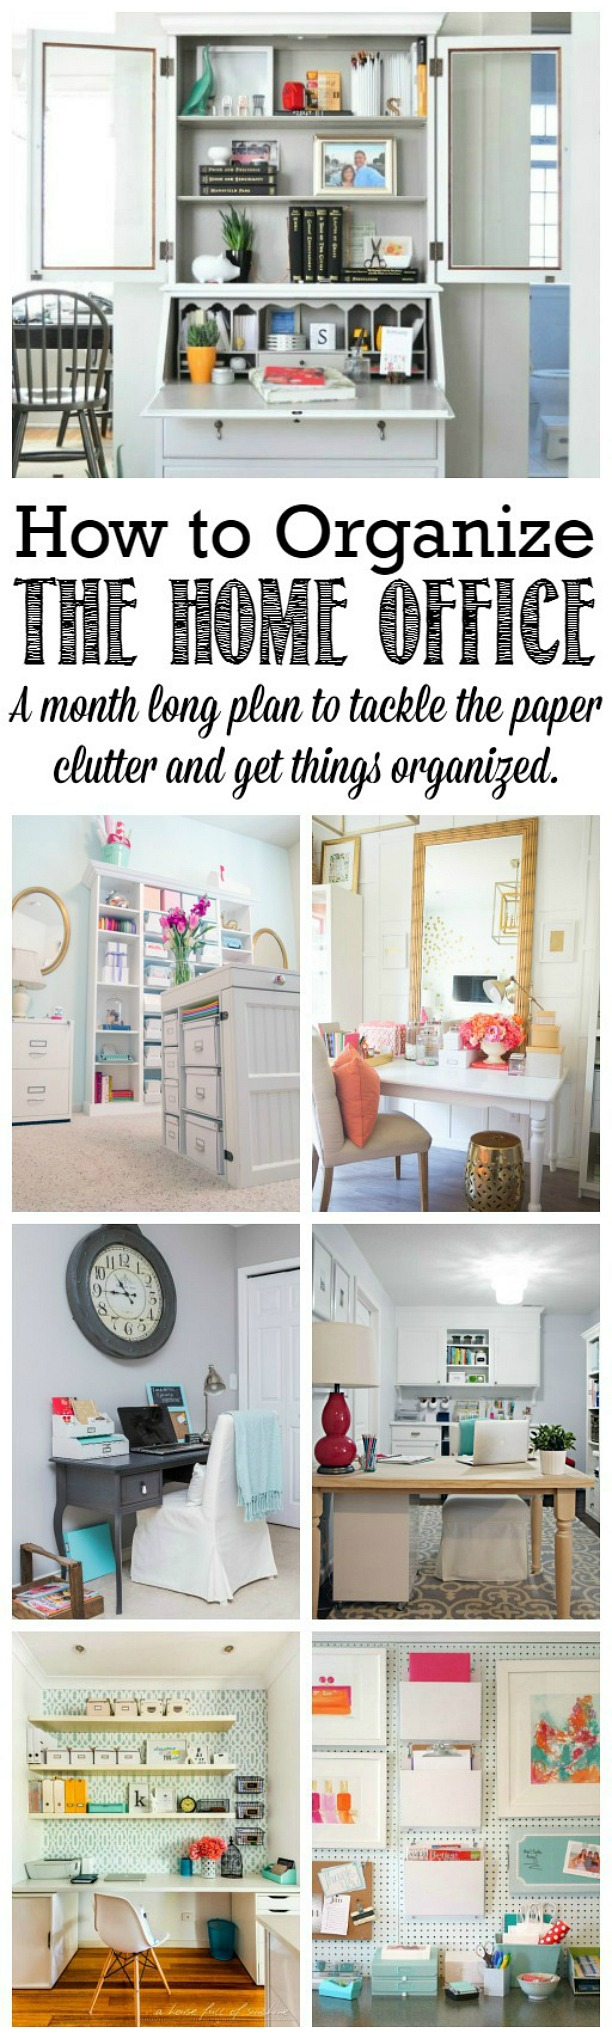 A step by step plan to get your home office {and all of that paperwork!} organized.